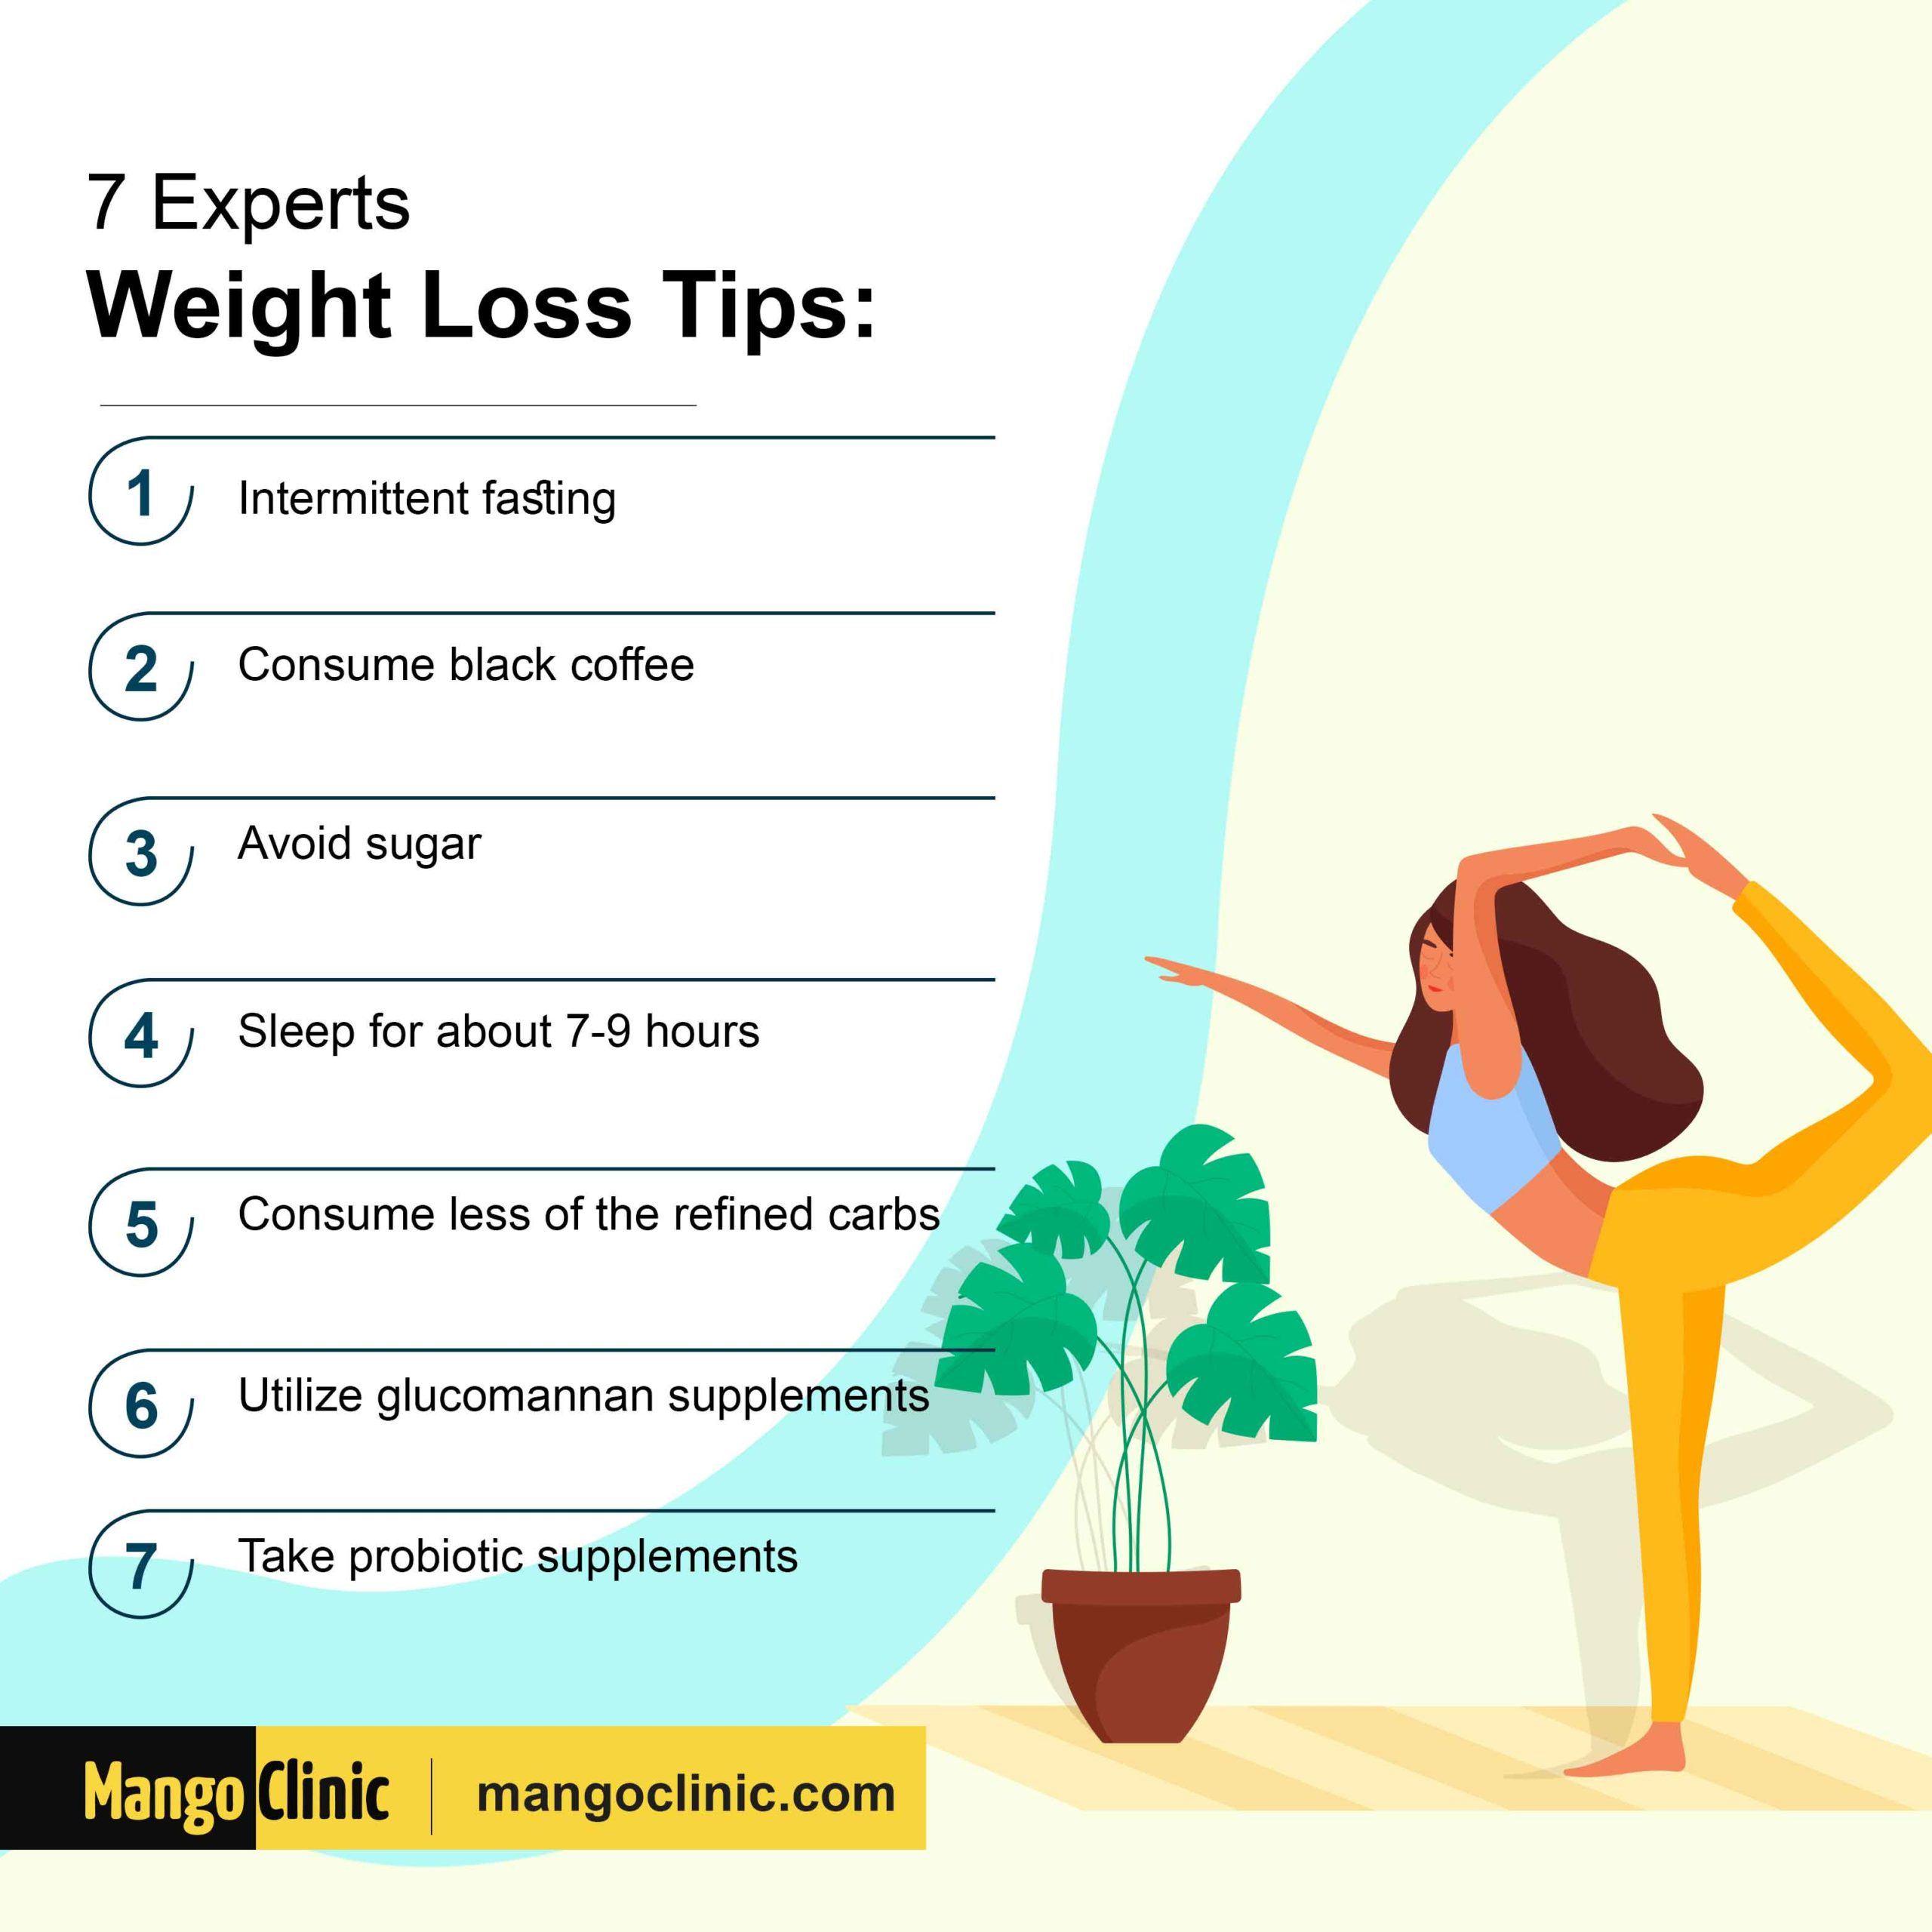 weight loss tips by experts